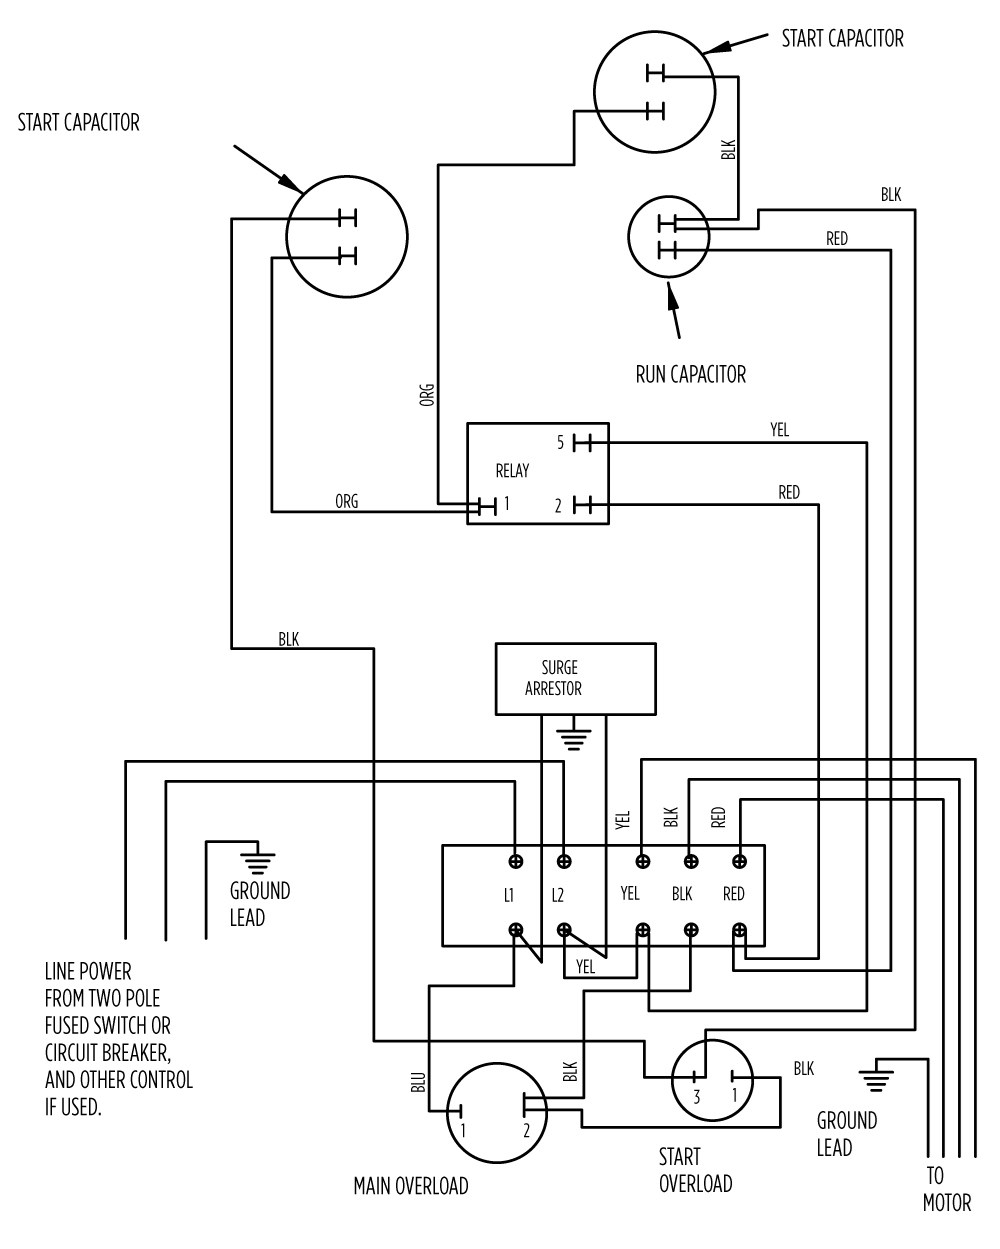 75 hp standard 282 201 9210_aim gallery?format=jpg&quality=80 aim manual page 56 single phase motors and controls motor franklin control box wiring diagram at soozxer.org